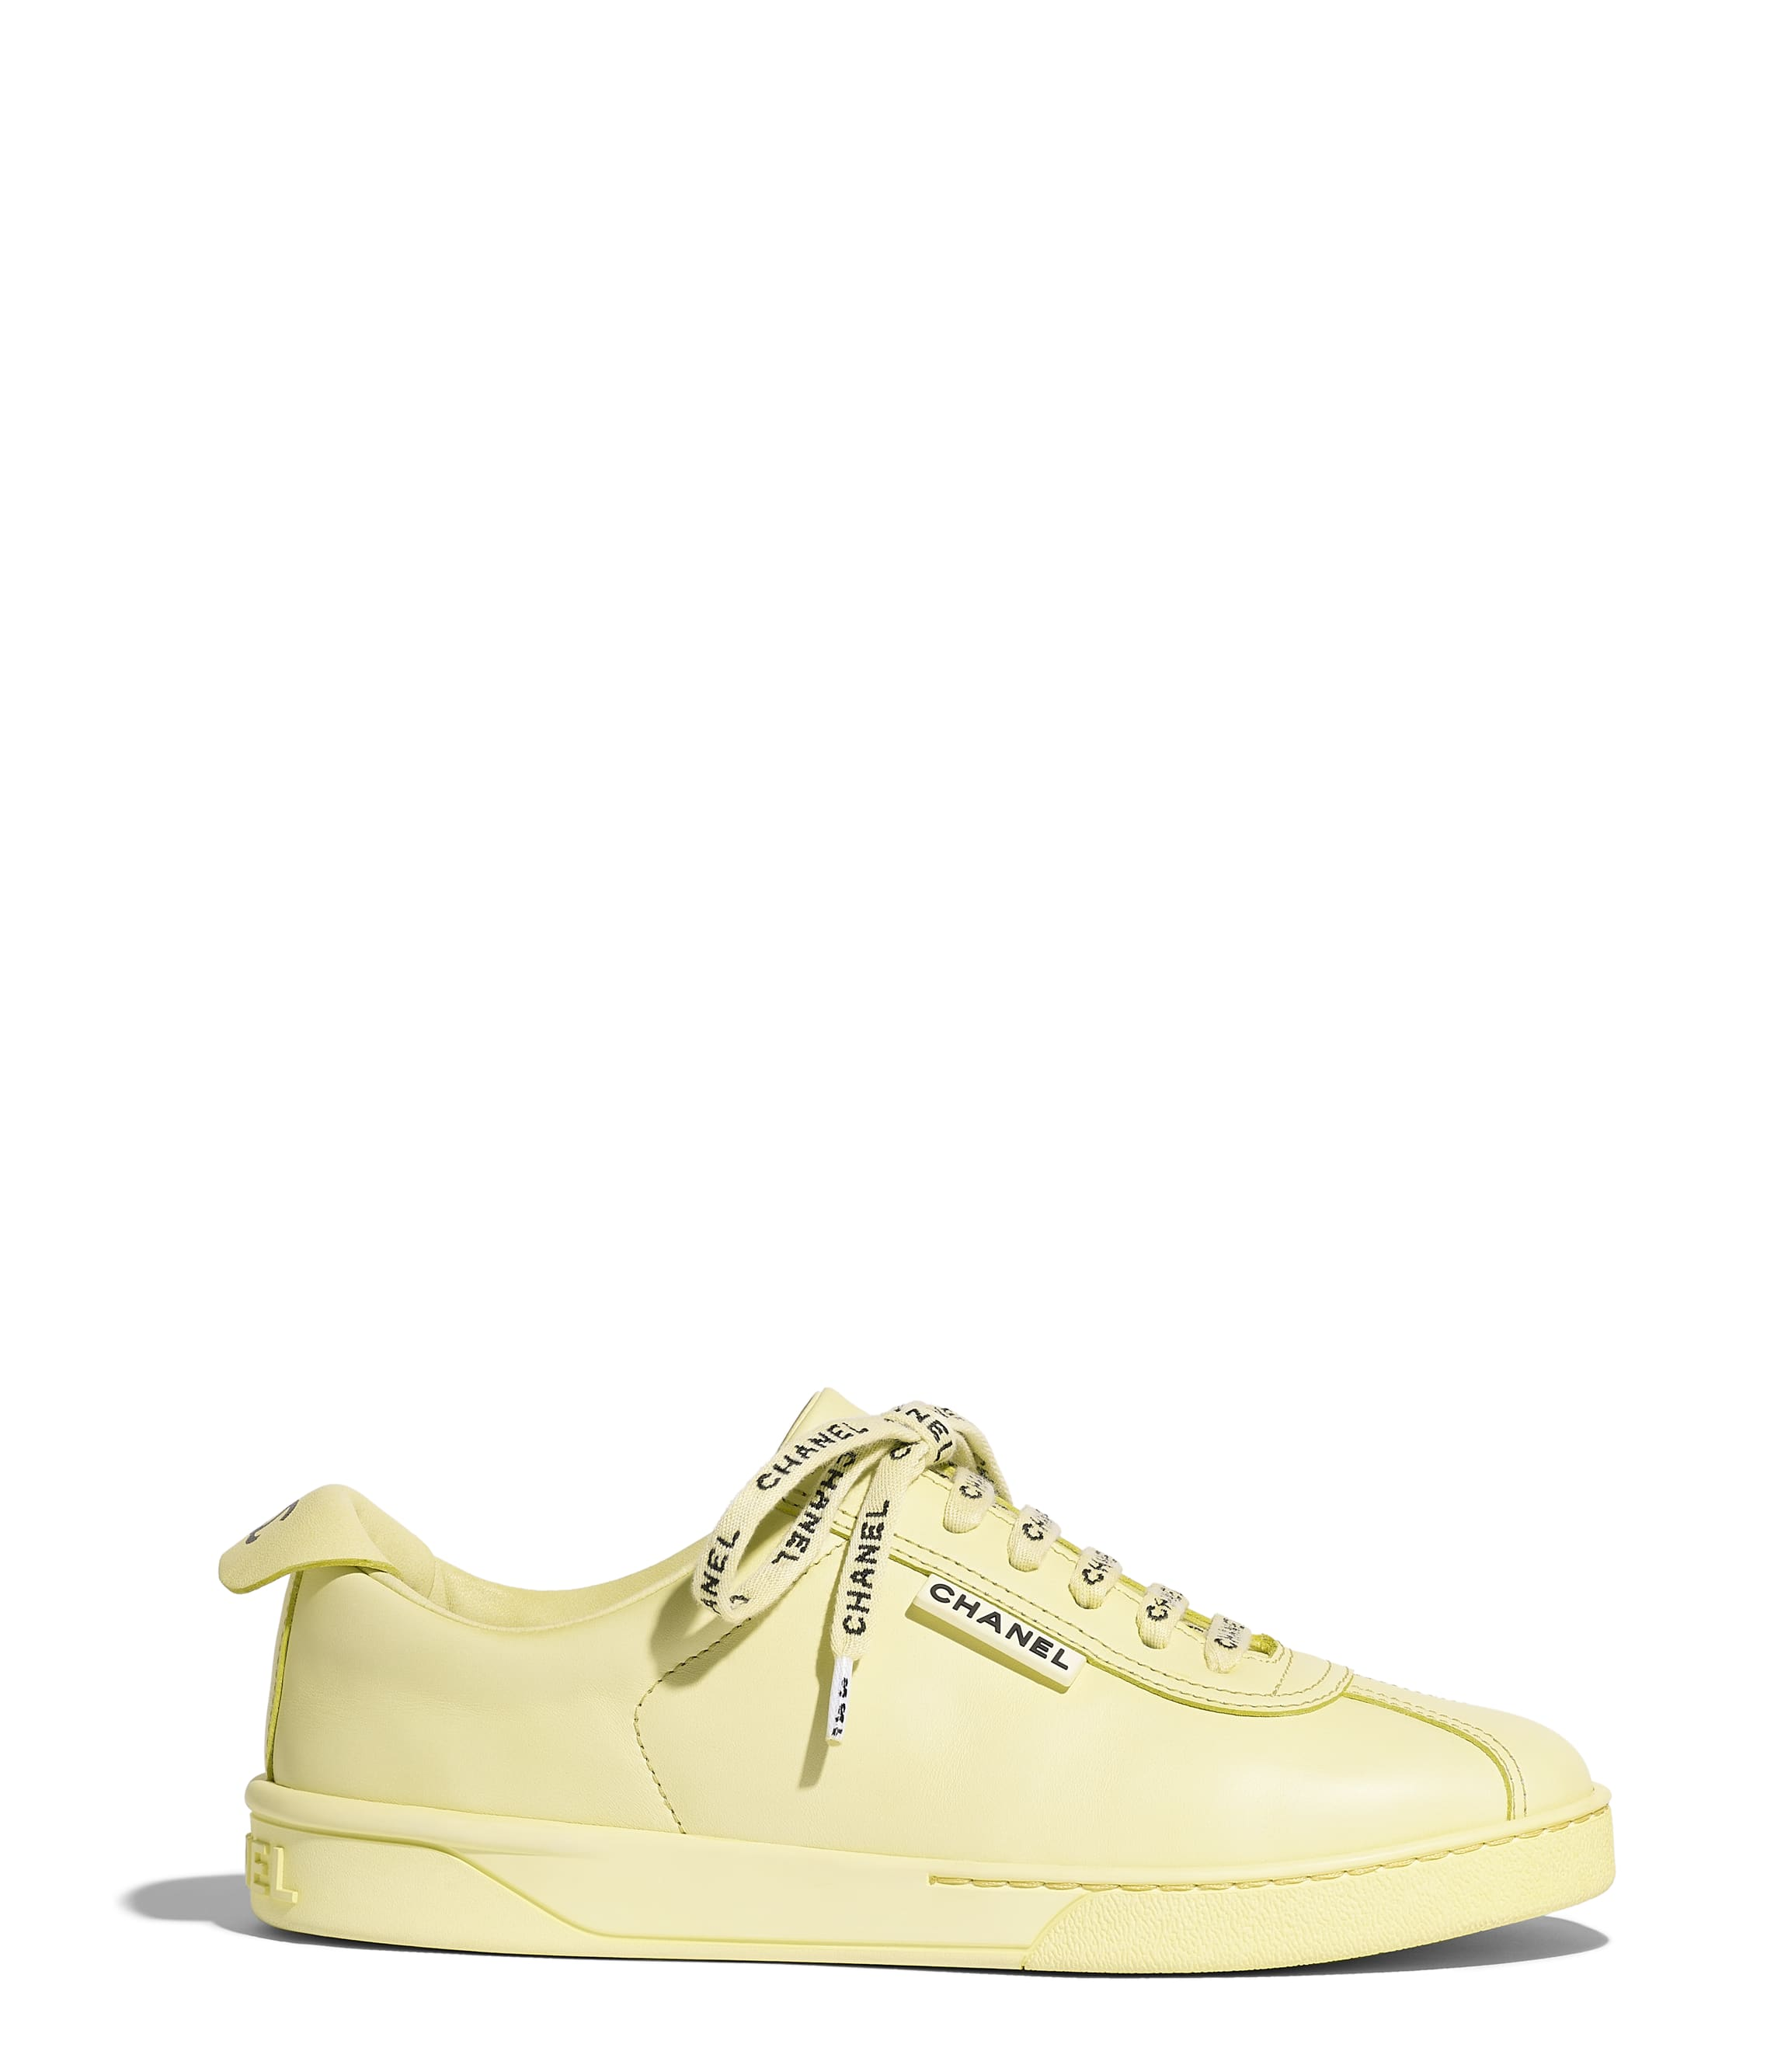 3e008ad936559 Sneakers - Shoes - CHANEL